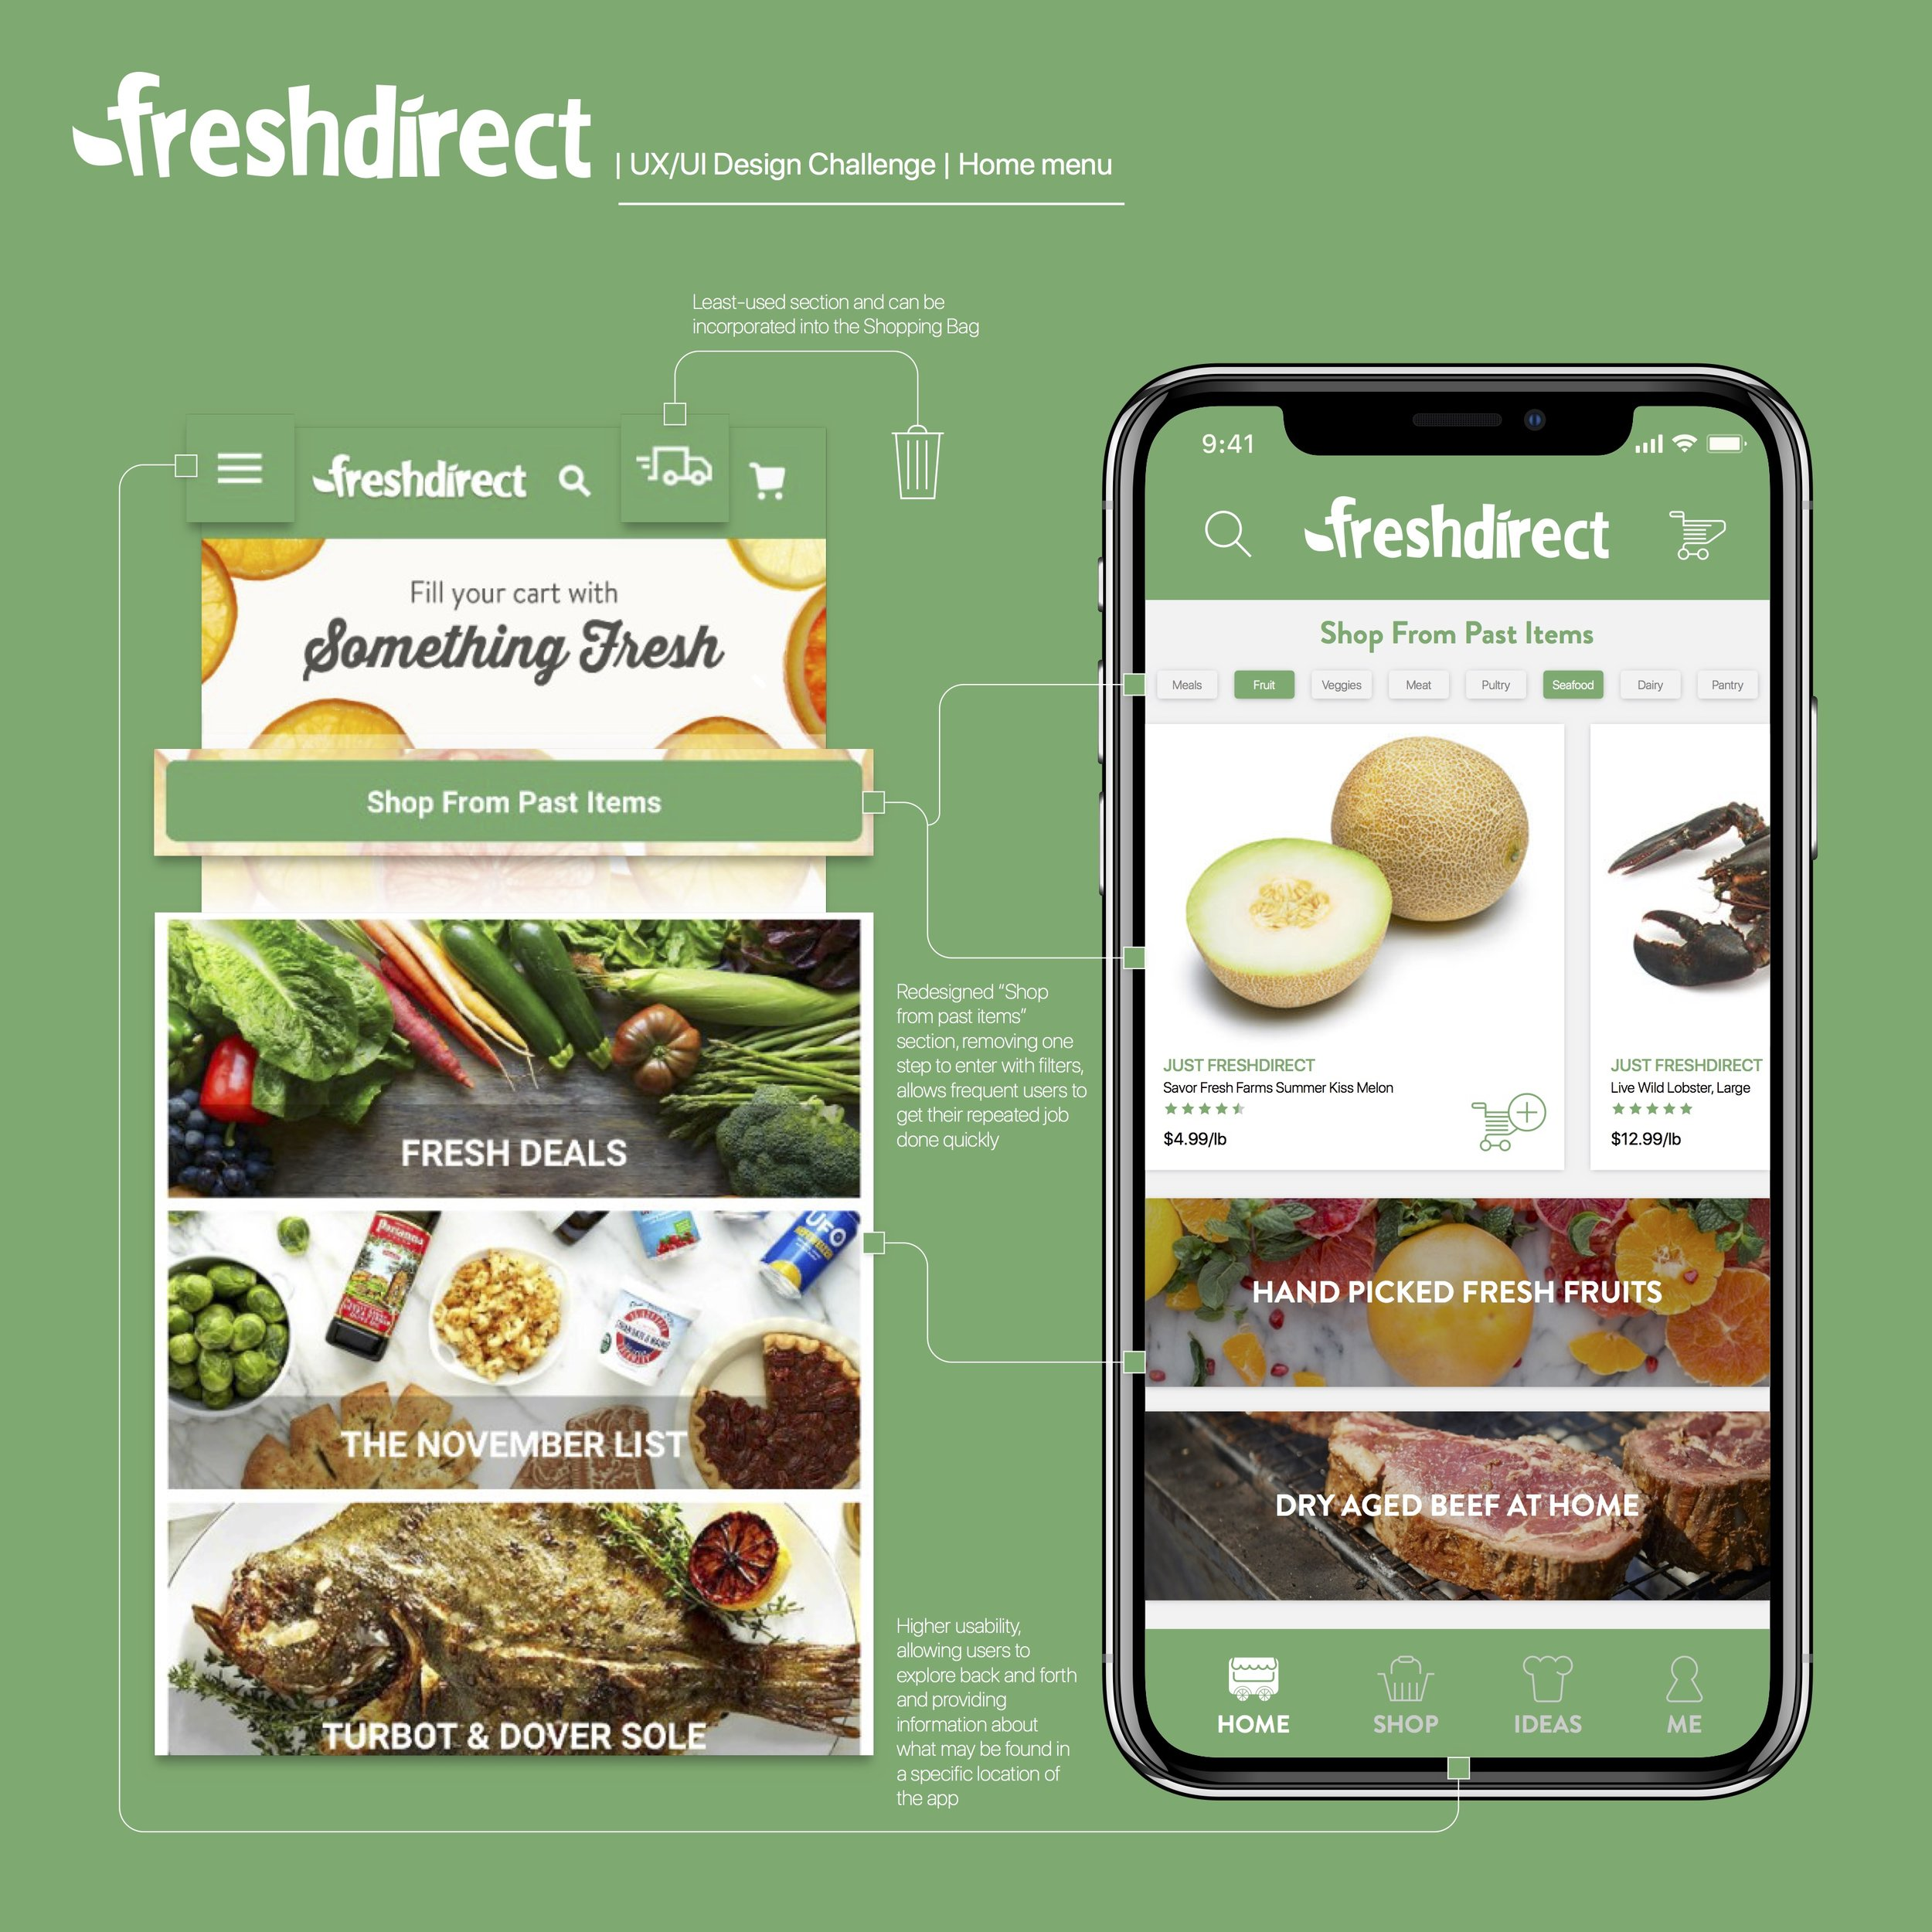 How might we revamp FreshDirect's current home menu to enhance customer loyalty through user experience?